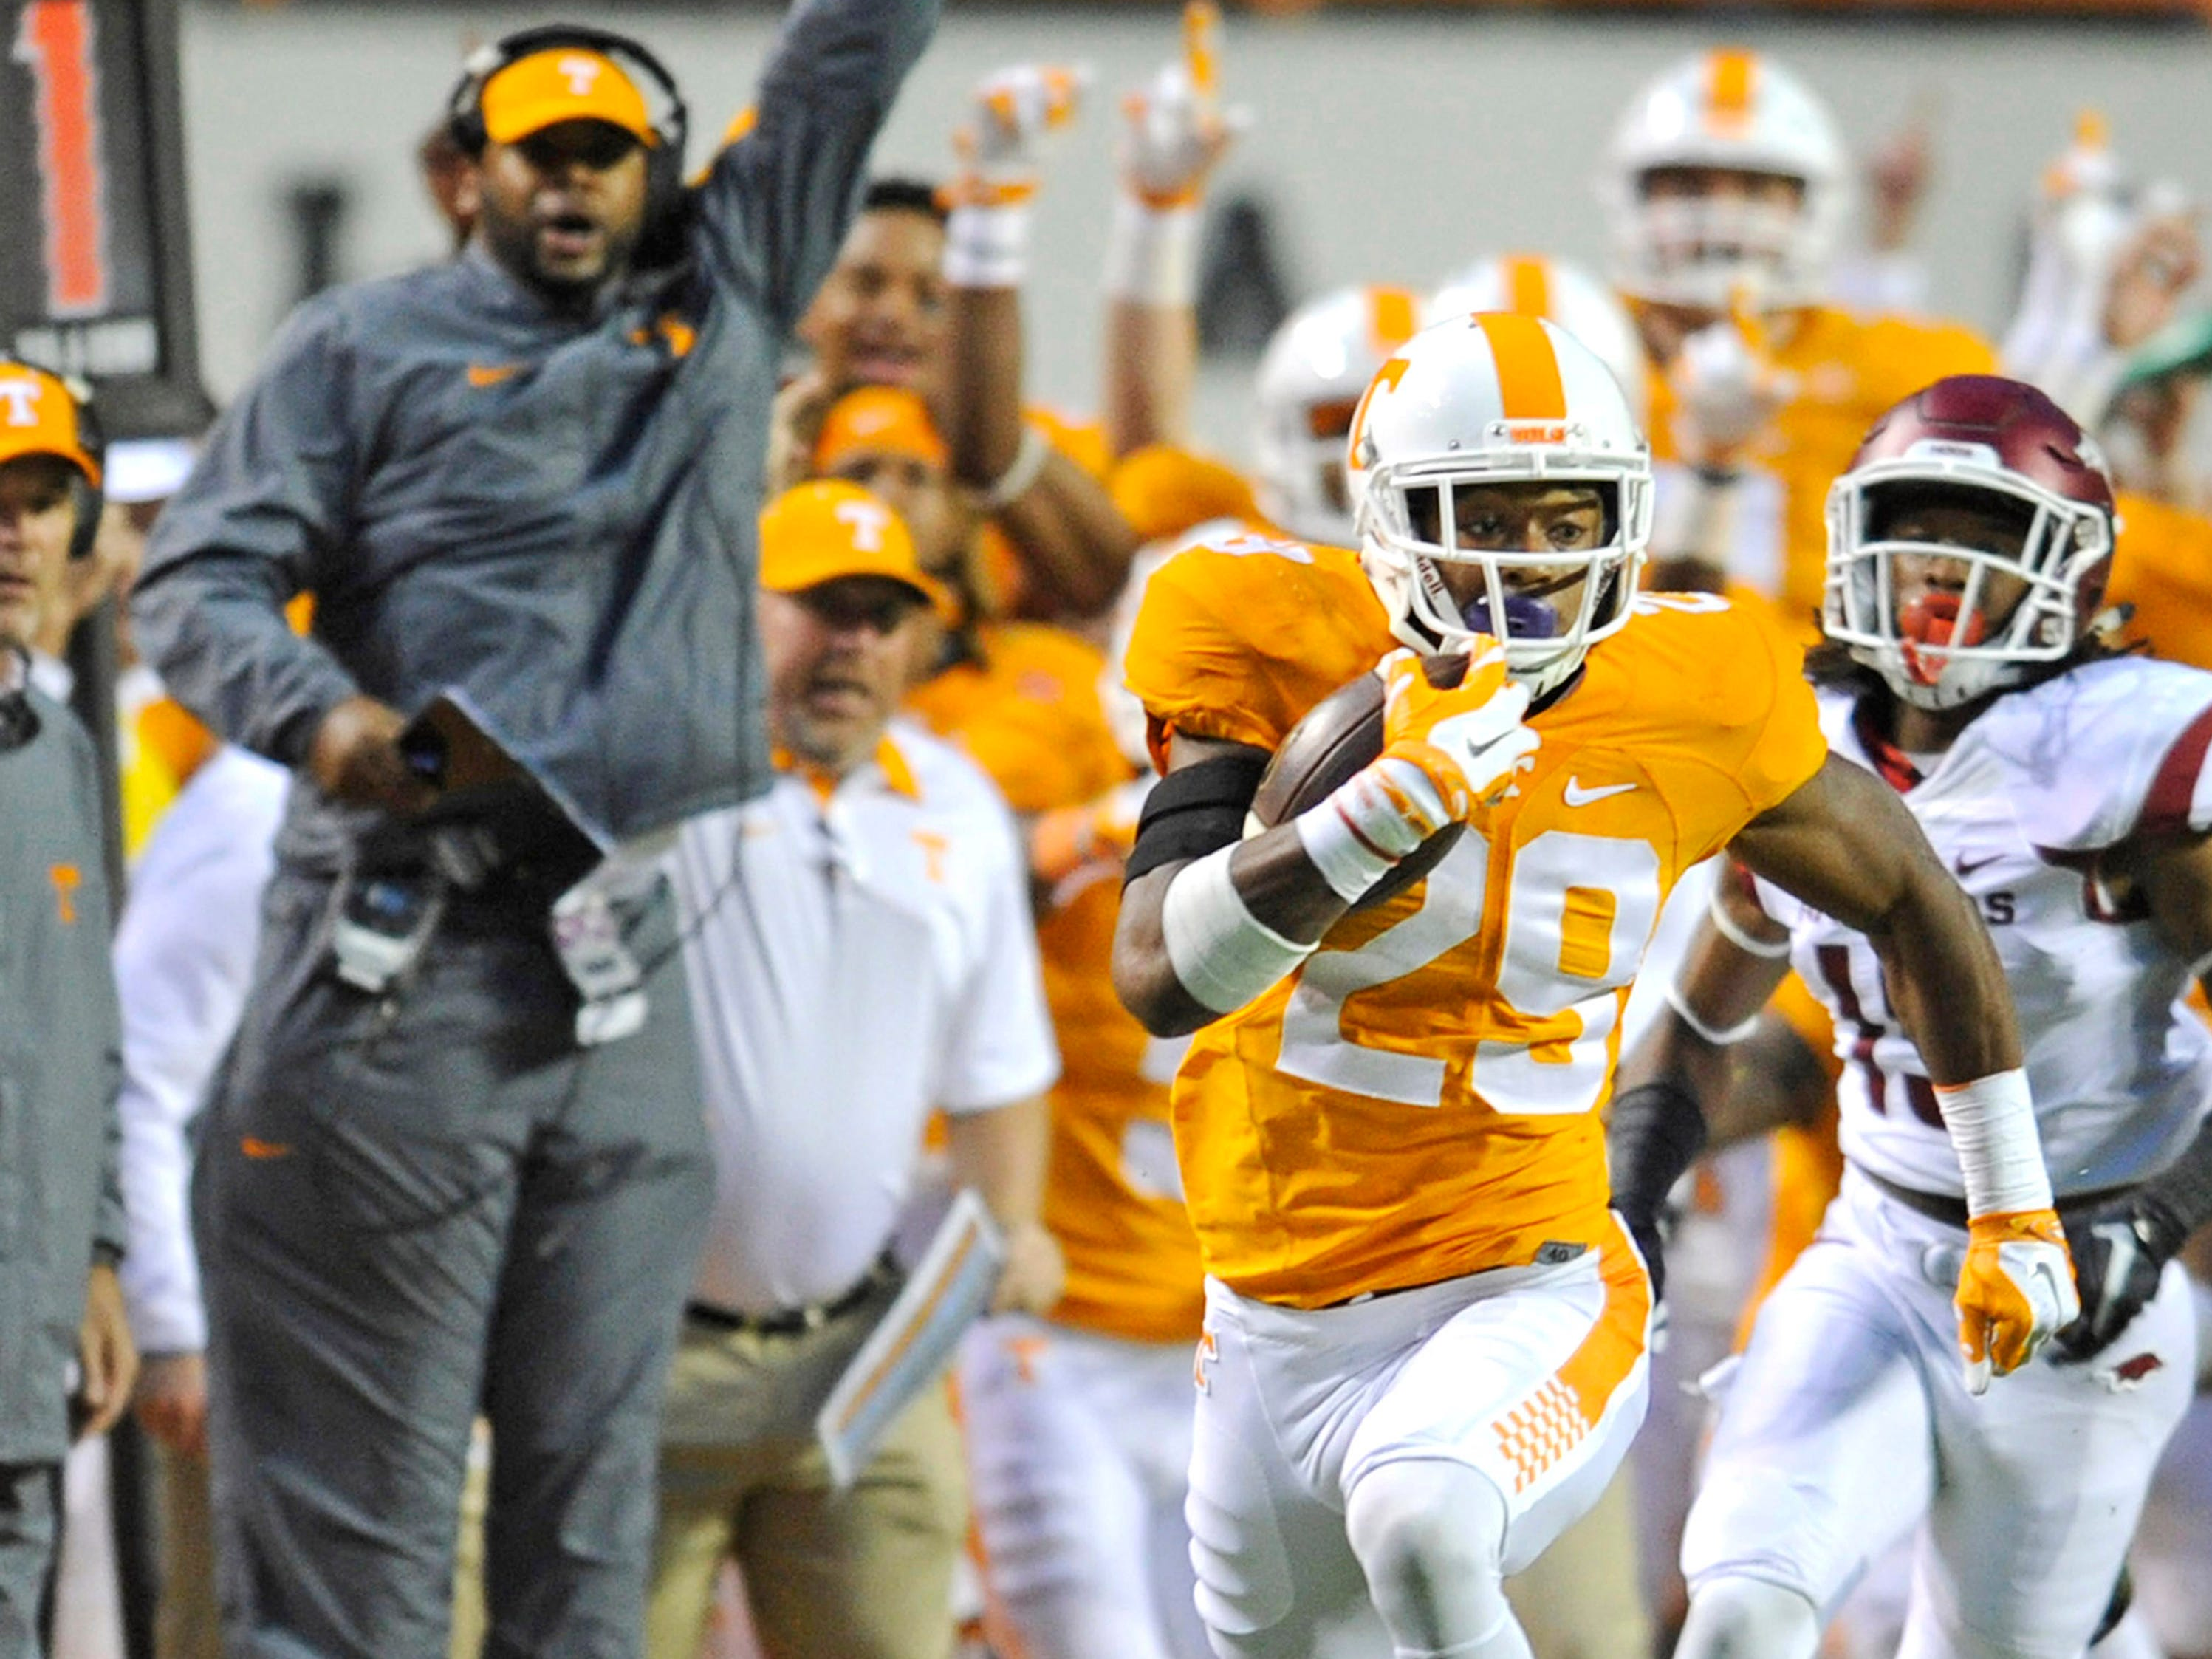 Tennessee head coach Butch Jones and coaches react on the sideline as Tennessee defensive back Evan Berry (29) returns a kickoff for touchdown during the first half at Neyland Stadium in Knoxville, Tenn. on Saturday, Oct. 3, 2015. (AMY SMOTHERMAN BURGESS/NEWS SENTINEL)